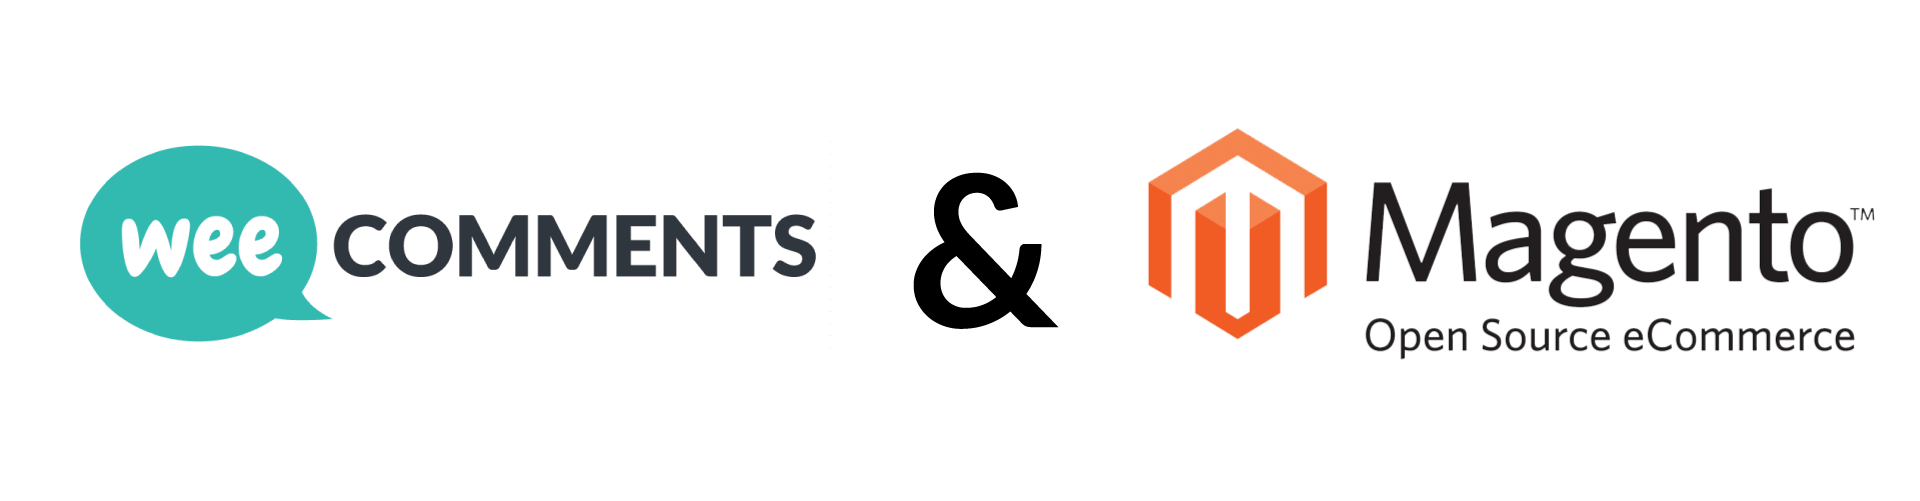 magento reviews extension weeComments